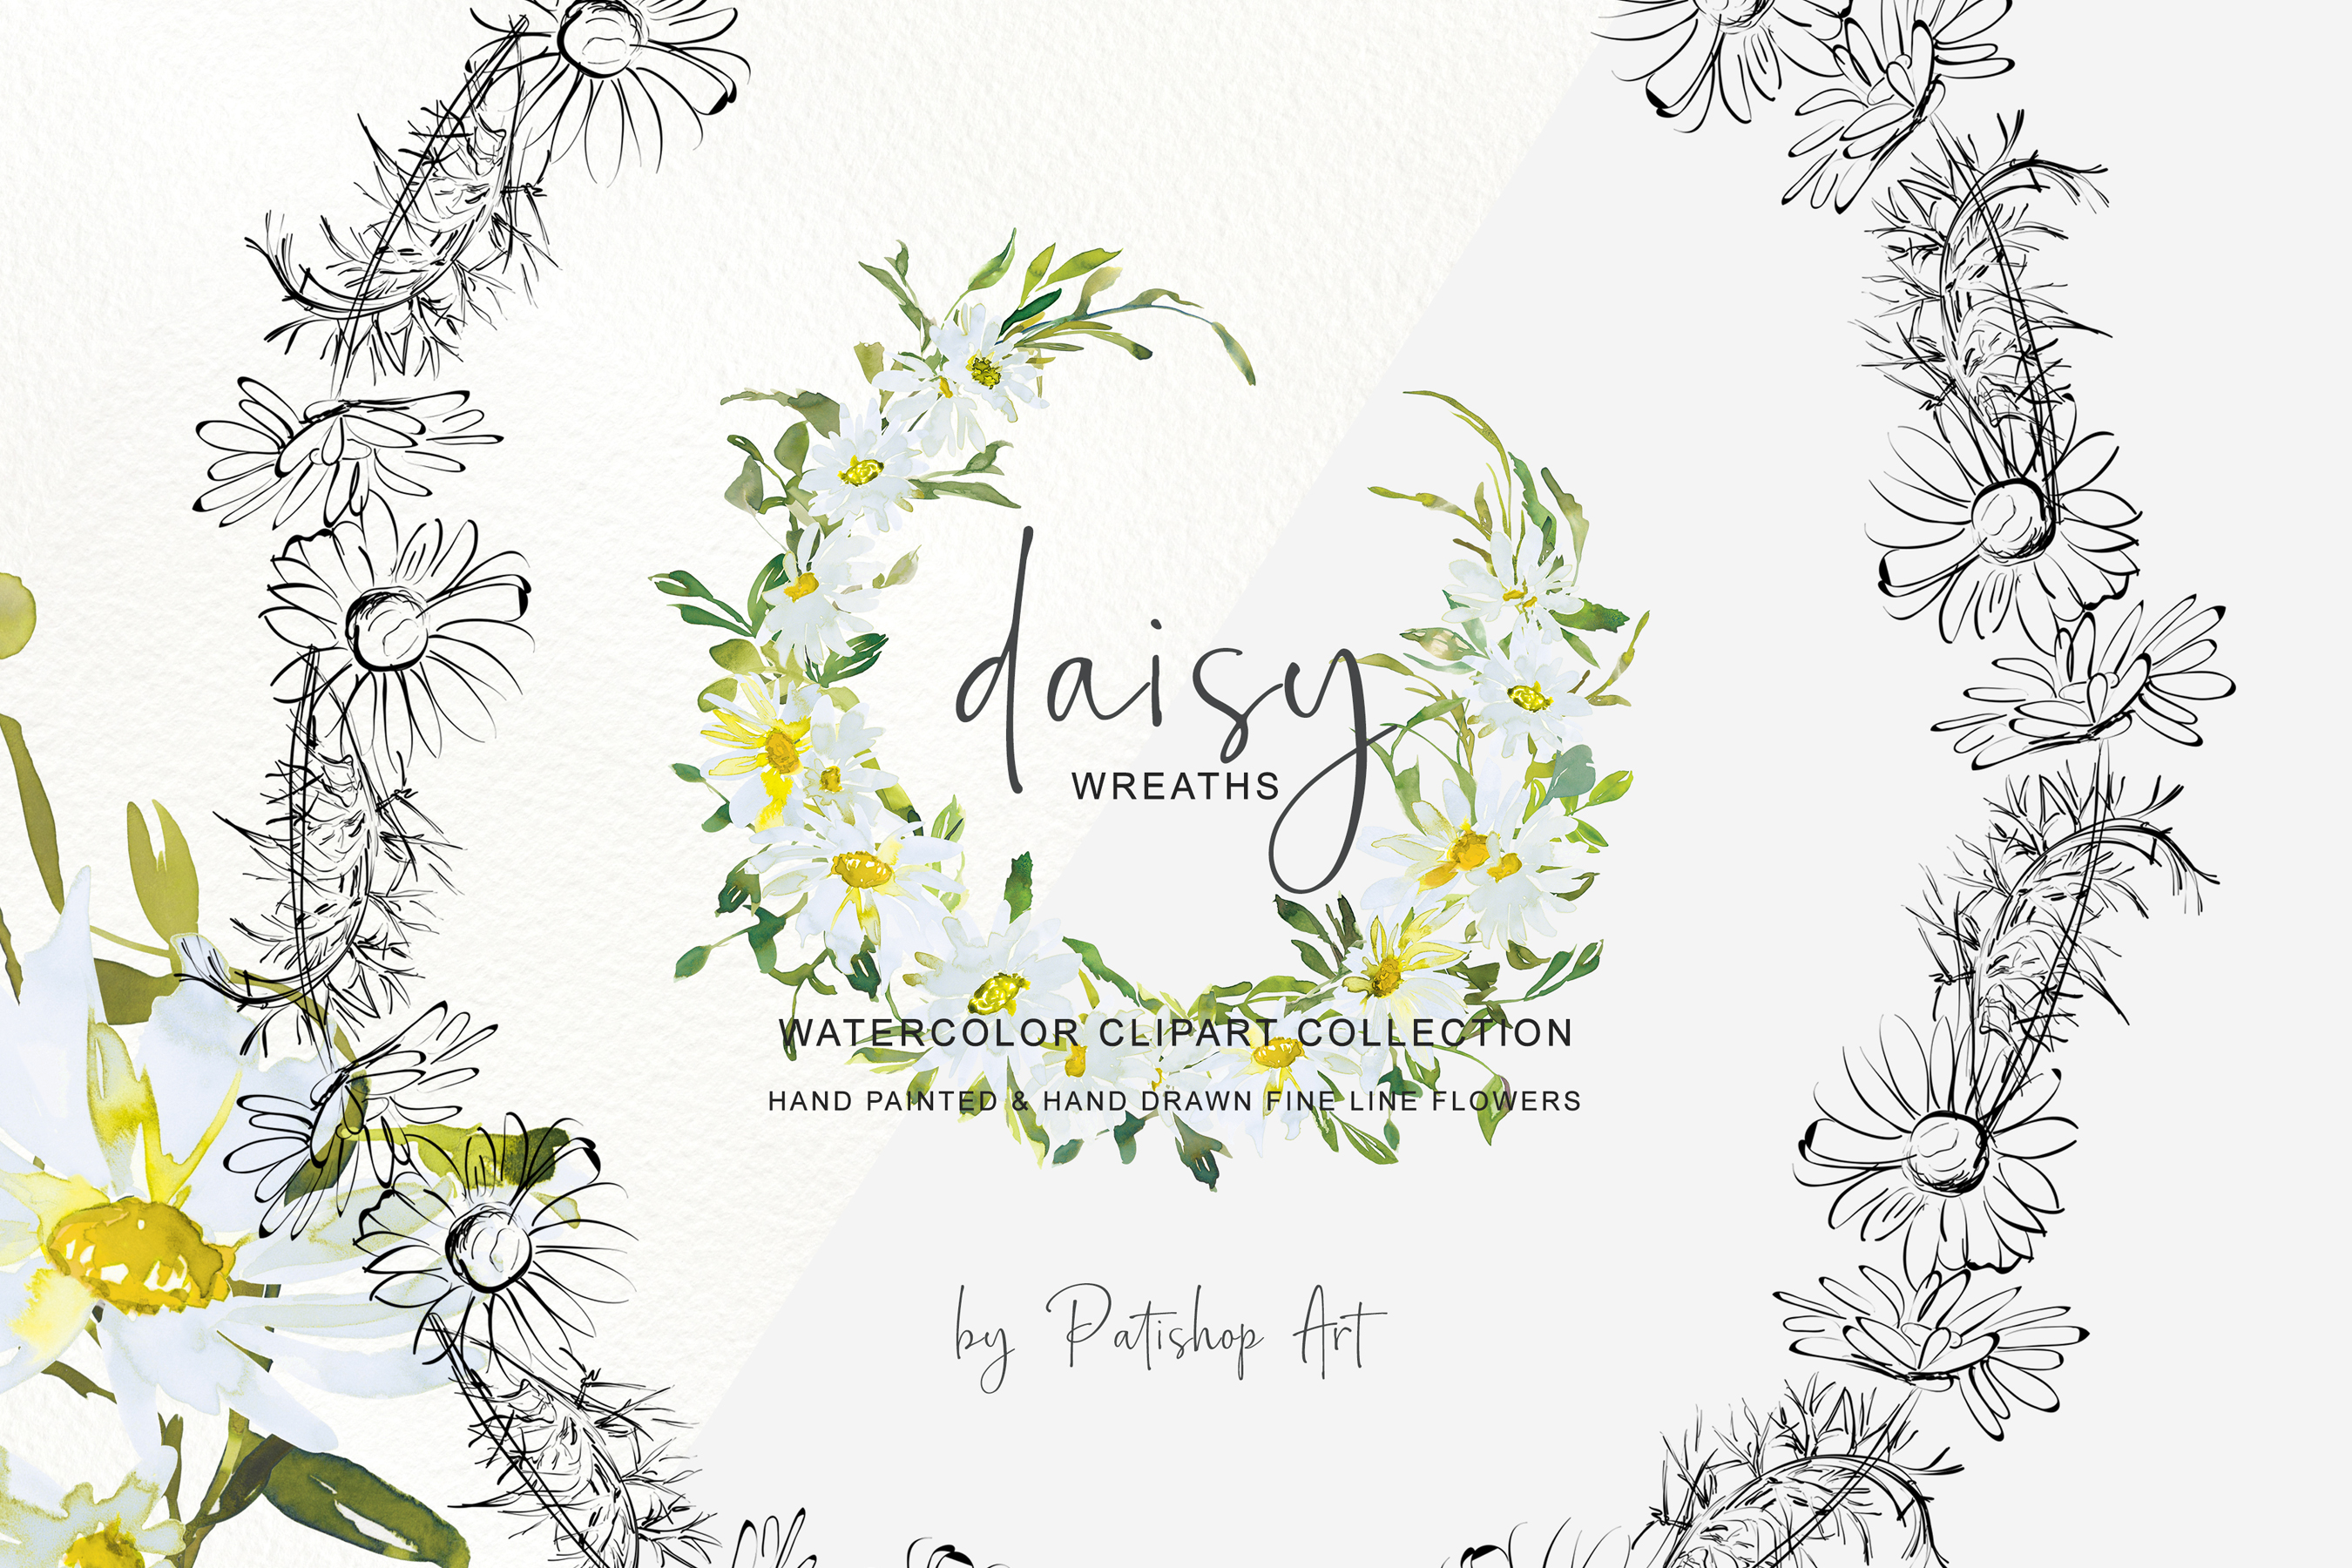 Watercolor Daisy Wreath Clip Art example image 4